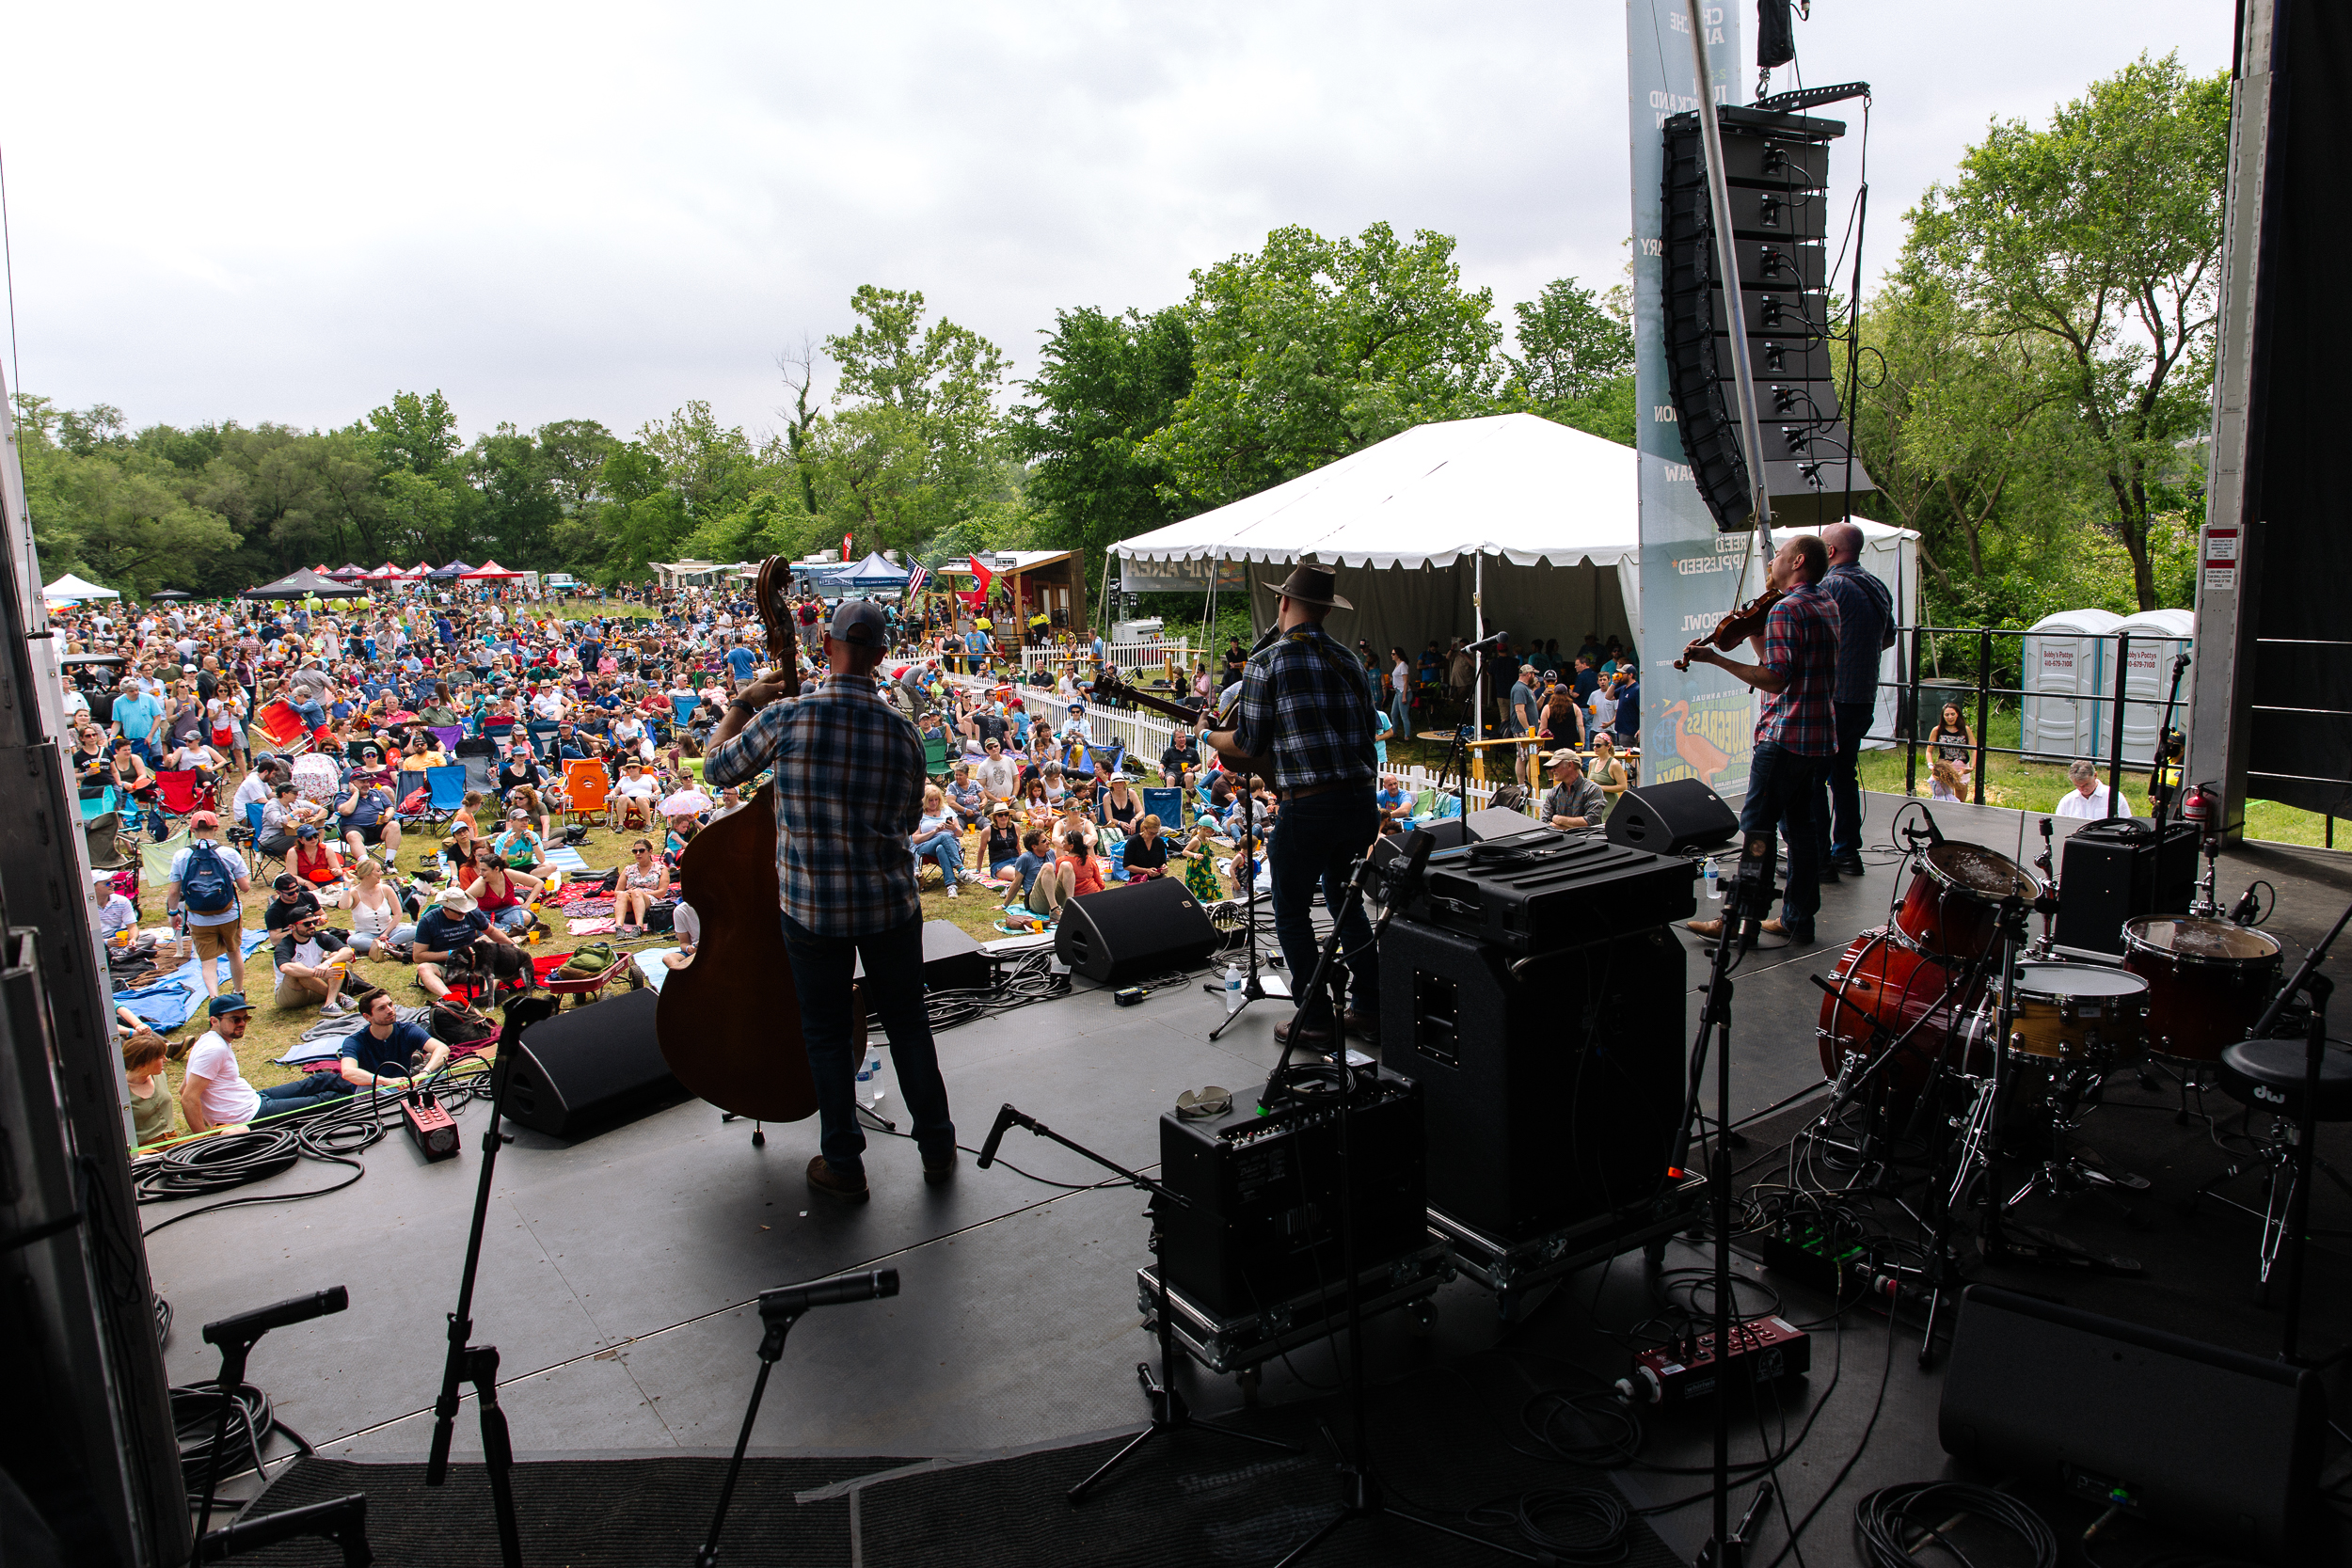 Justin Trawick & the Common Good at at Kingman Island Bluegrass & Folk Festival (Photo by Mauricio Castro)